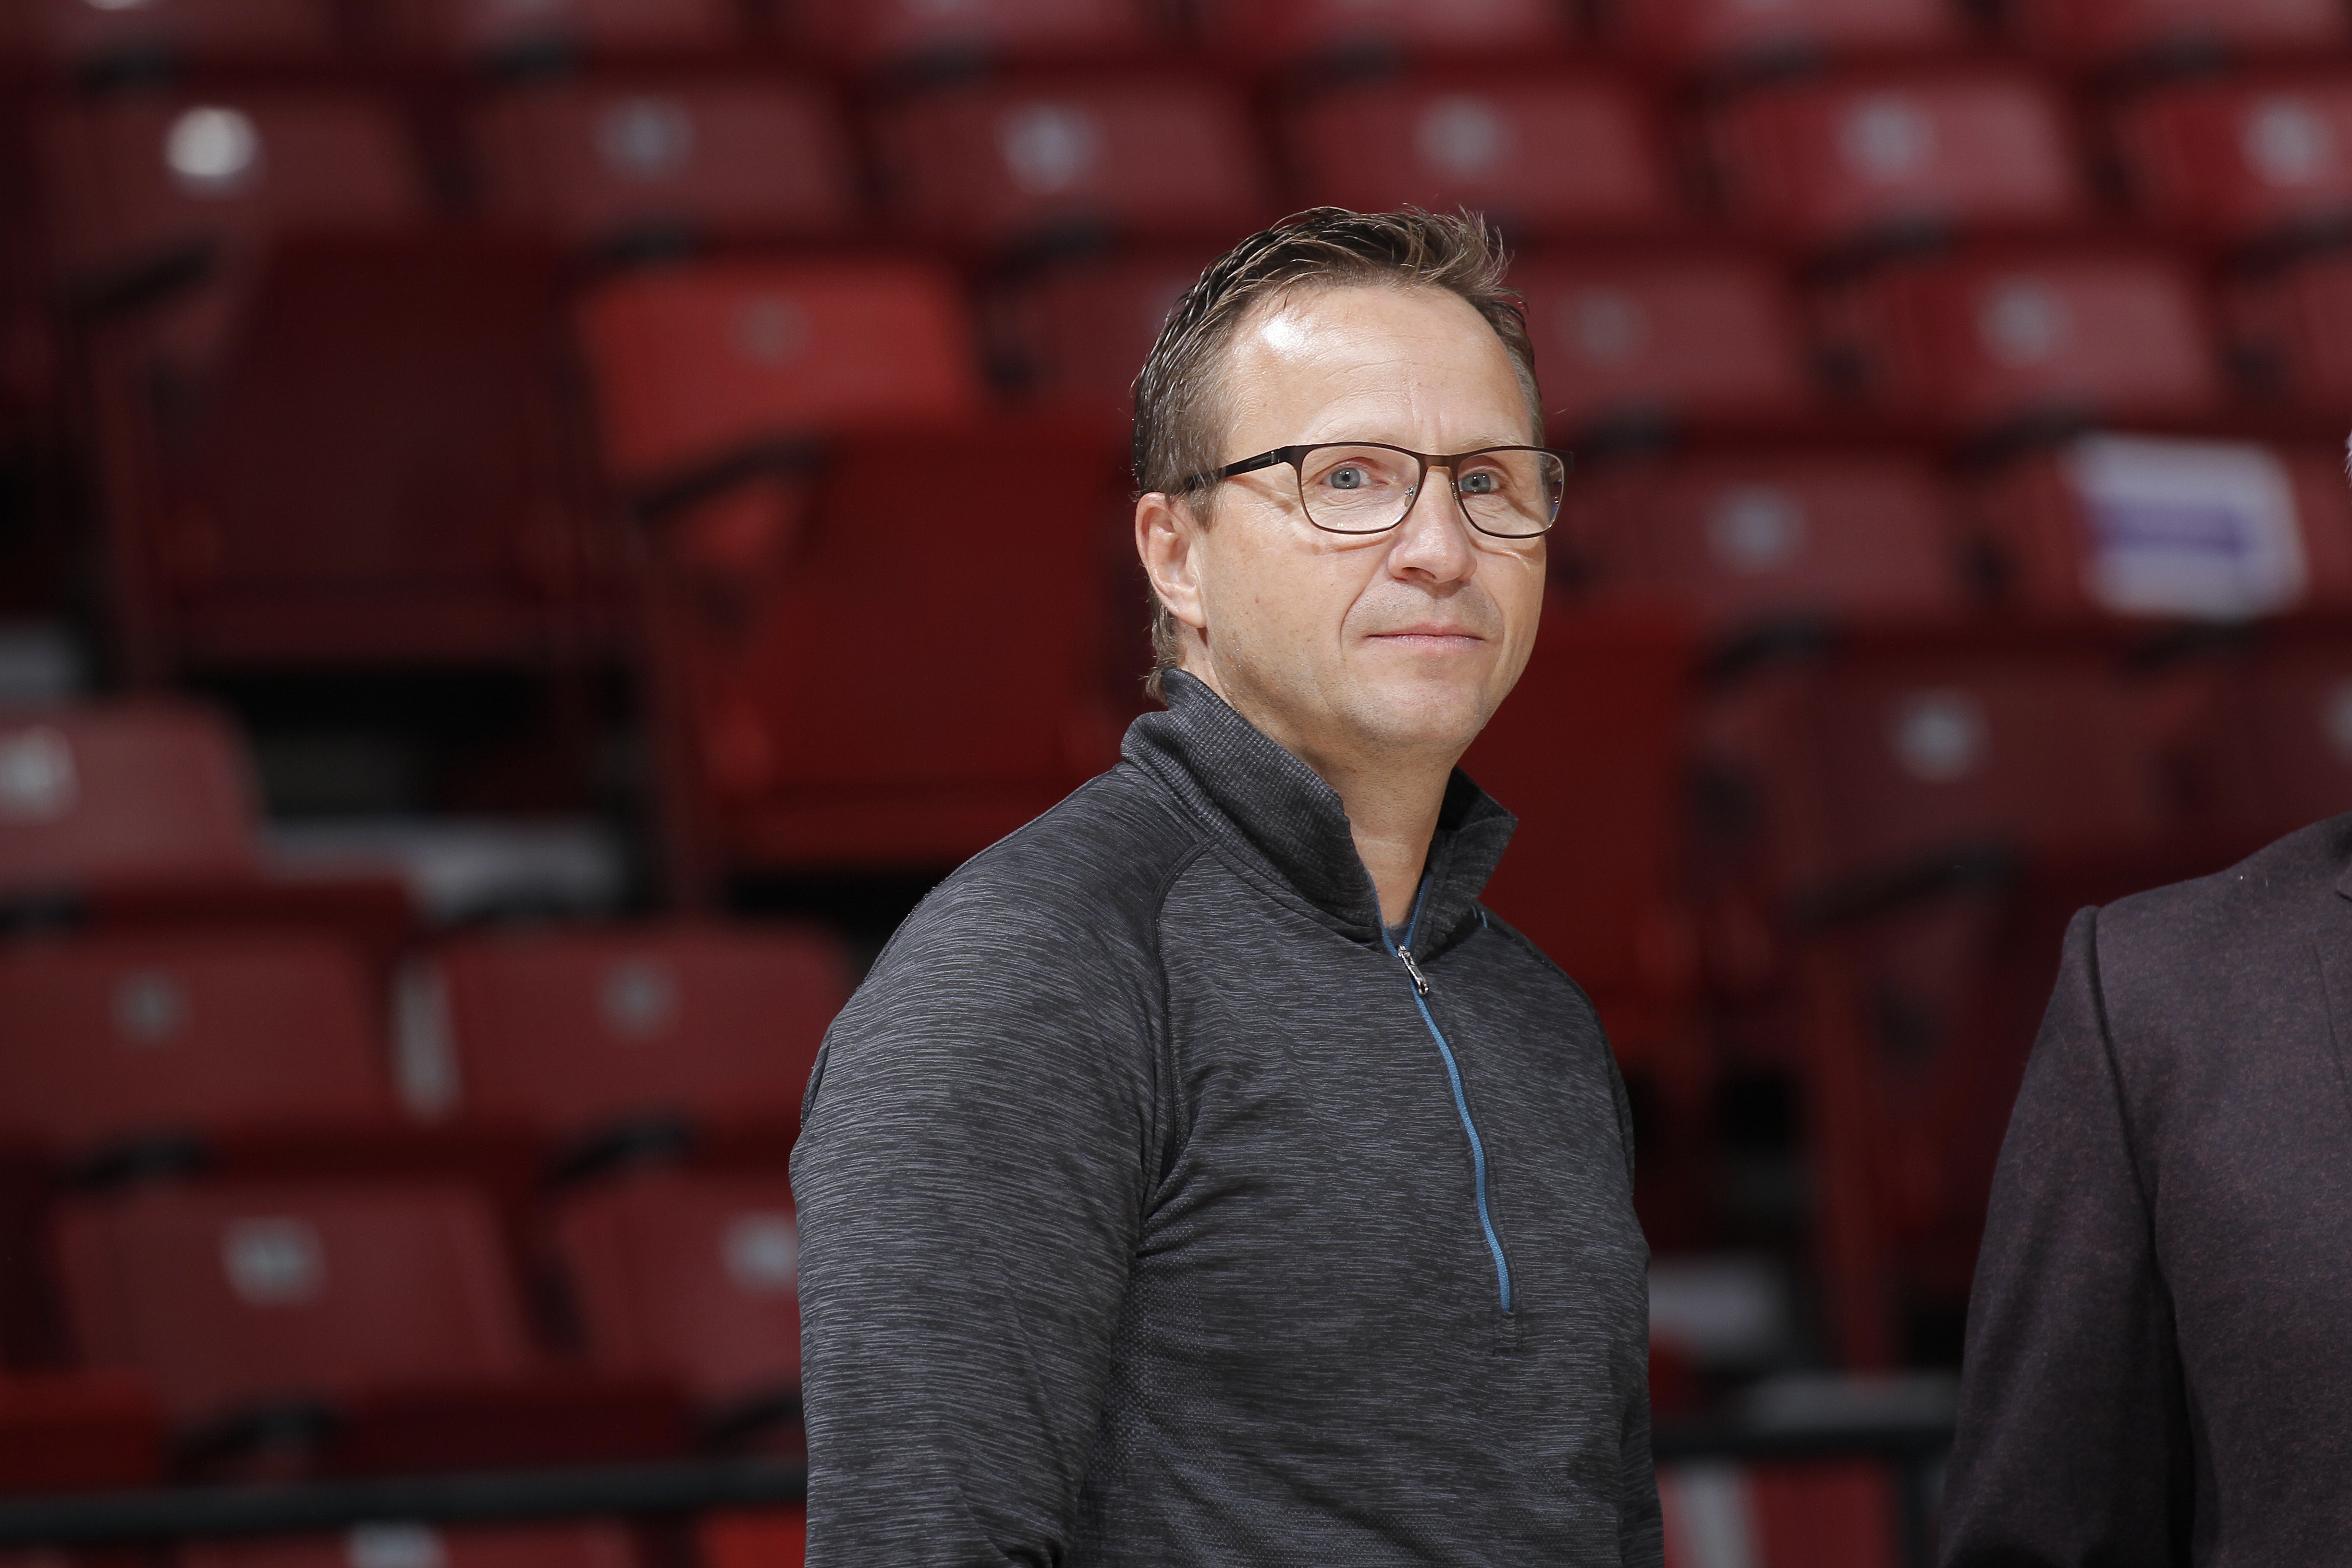 SACRAMENTO, CA - NOVEMBER 15: Scott Brooks attends the game between the Toronto Raptors and Sacramento Kings on November 15, 2015 at Sleep Train Arena in Sacramento, California. (Photo by Rocky Widner/NBAE via Getty Images)